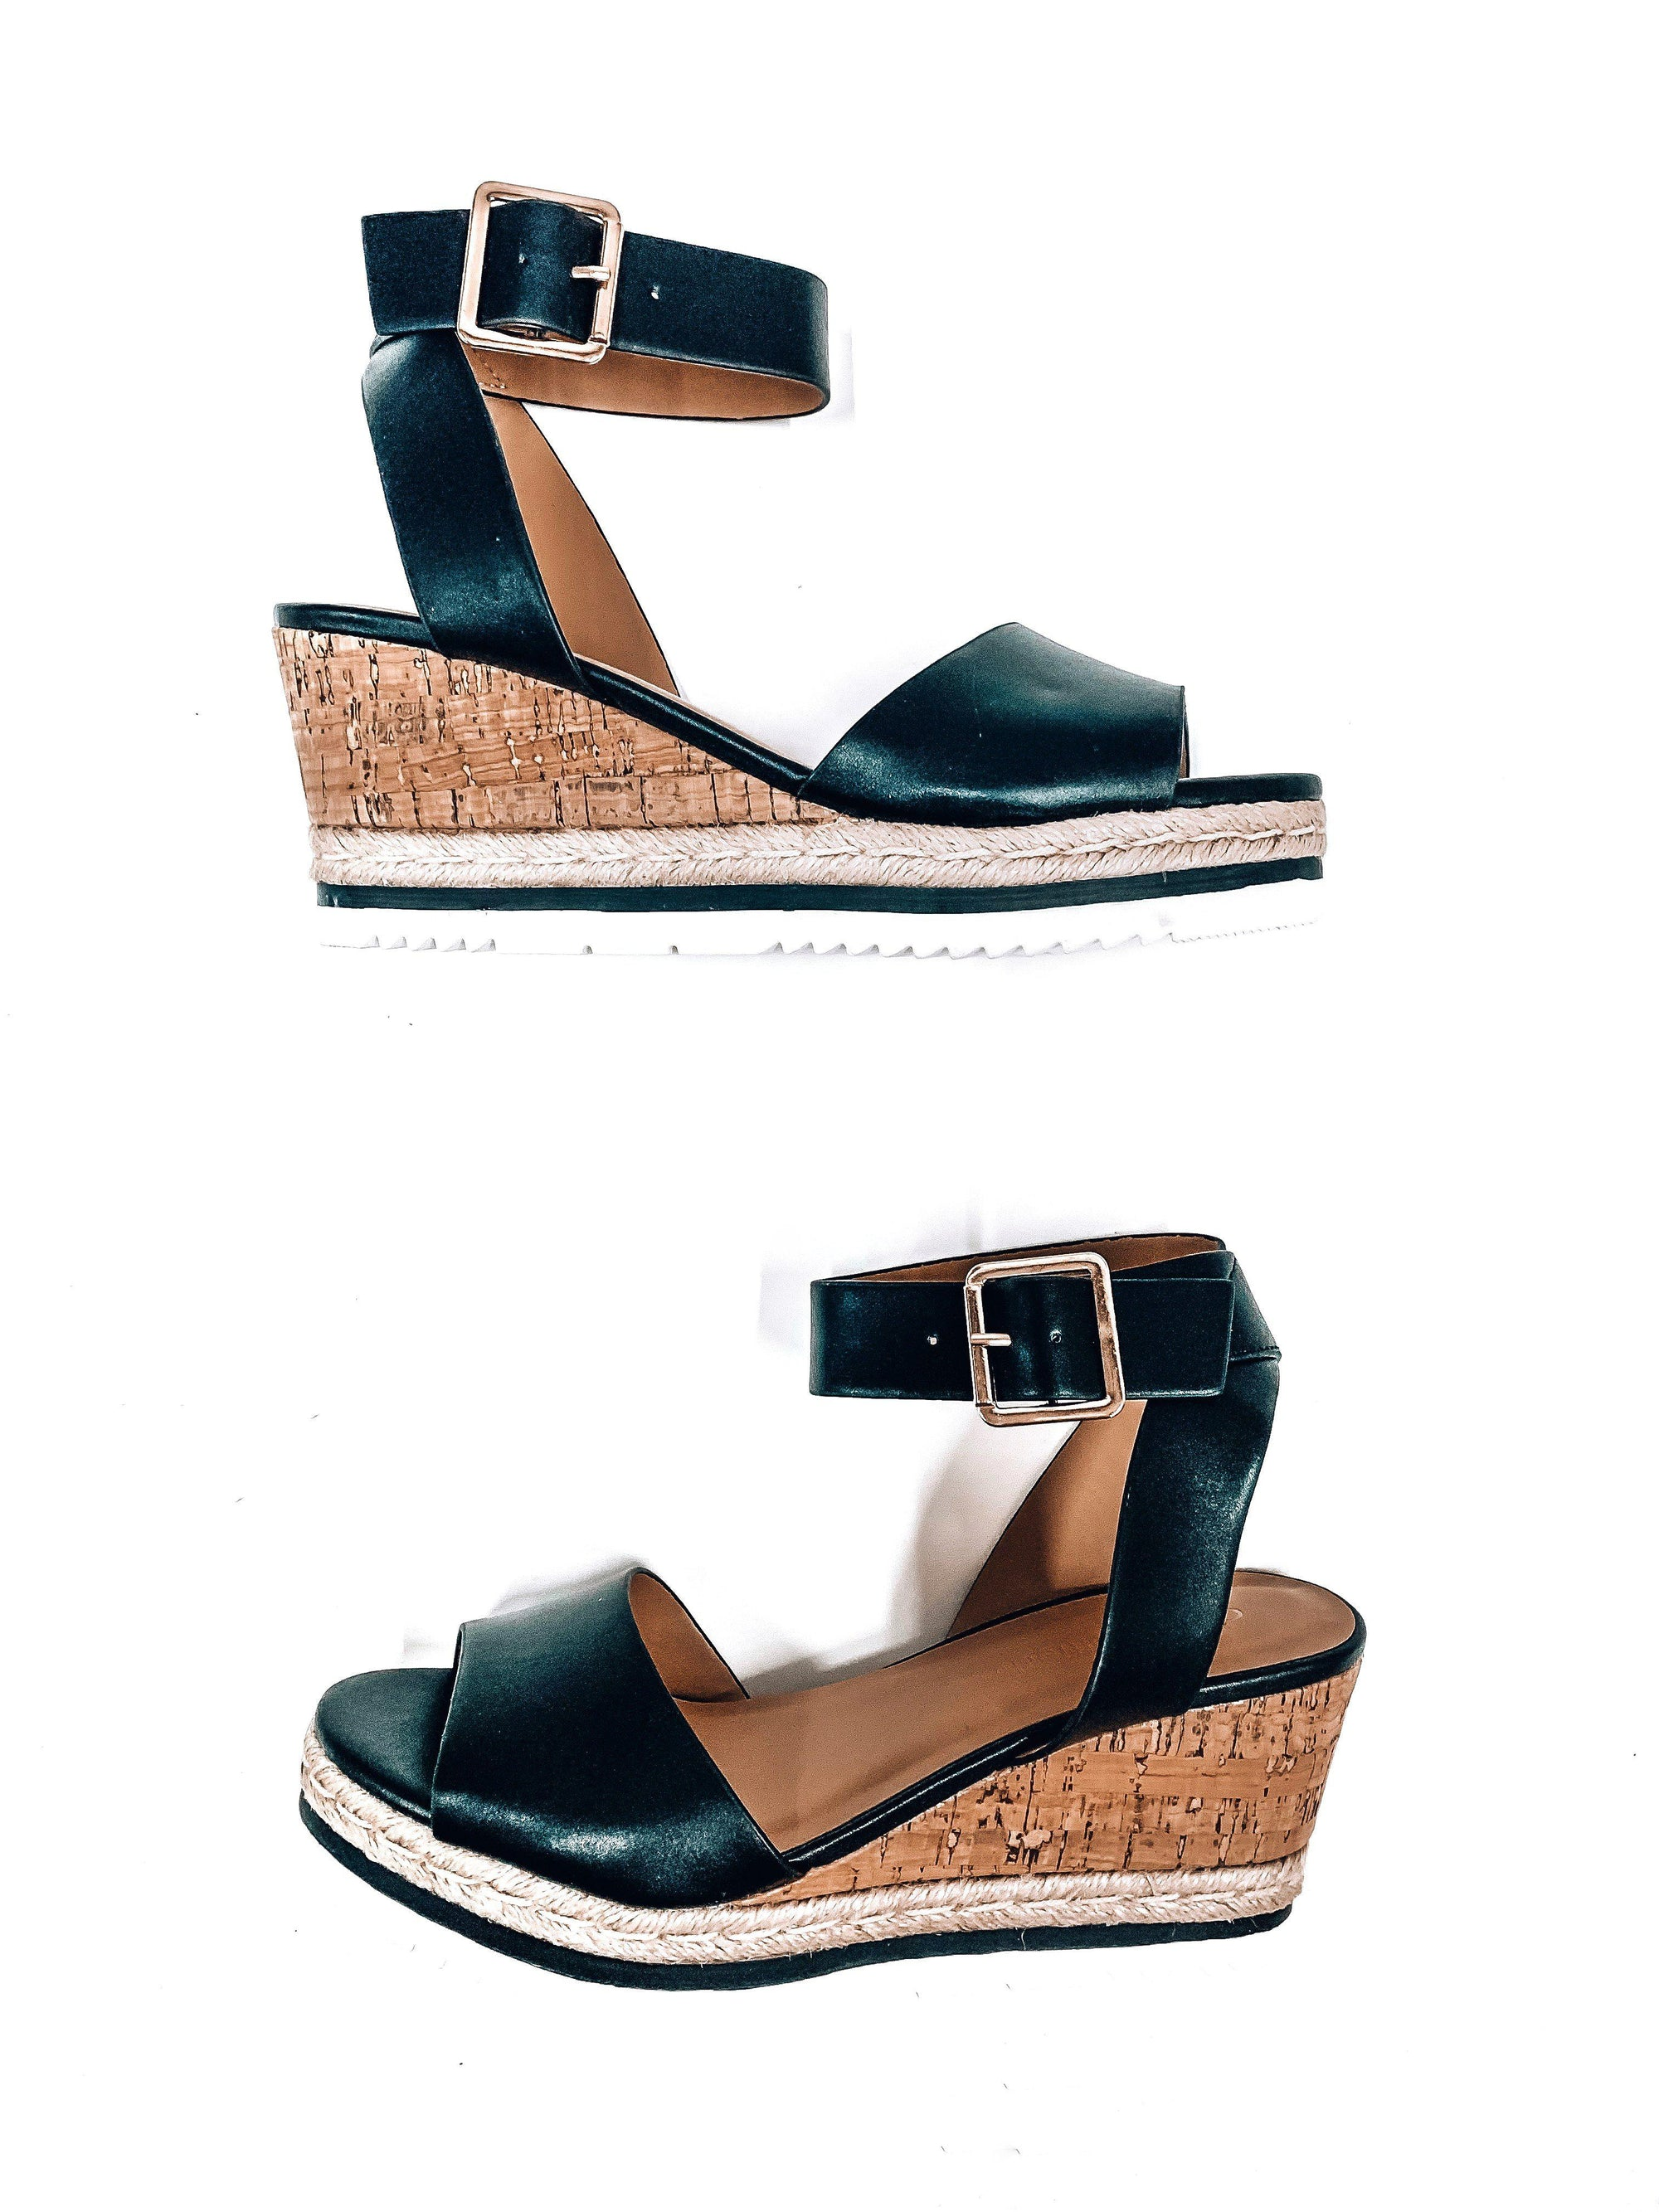 The Madison-Women's SHOES-New Arrivals-Runway Seven